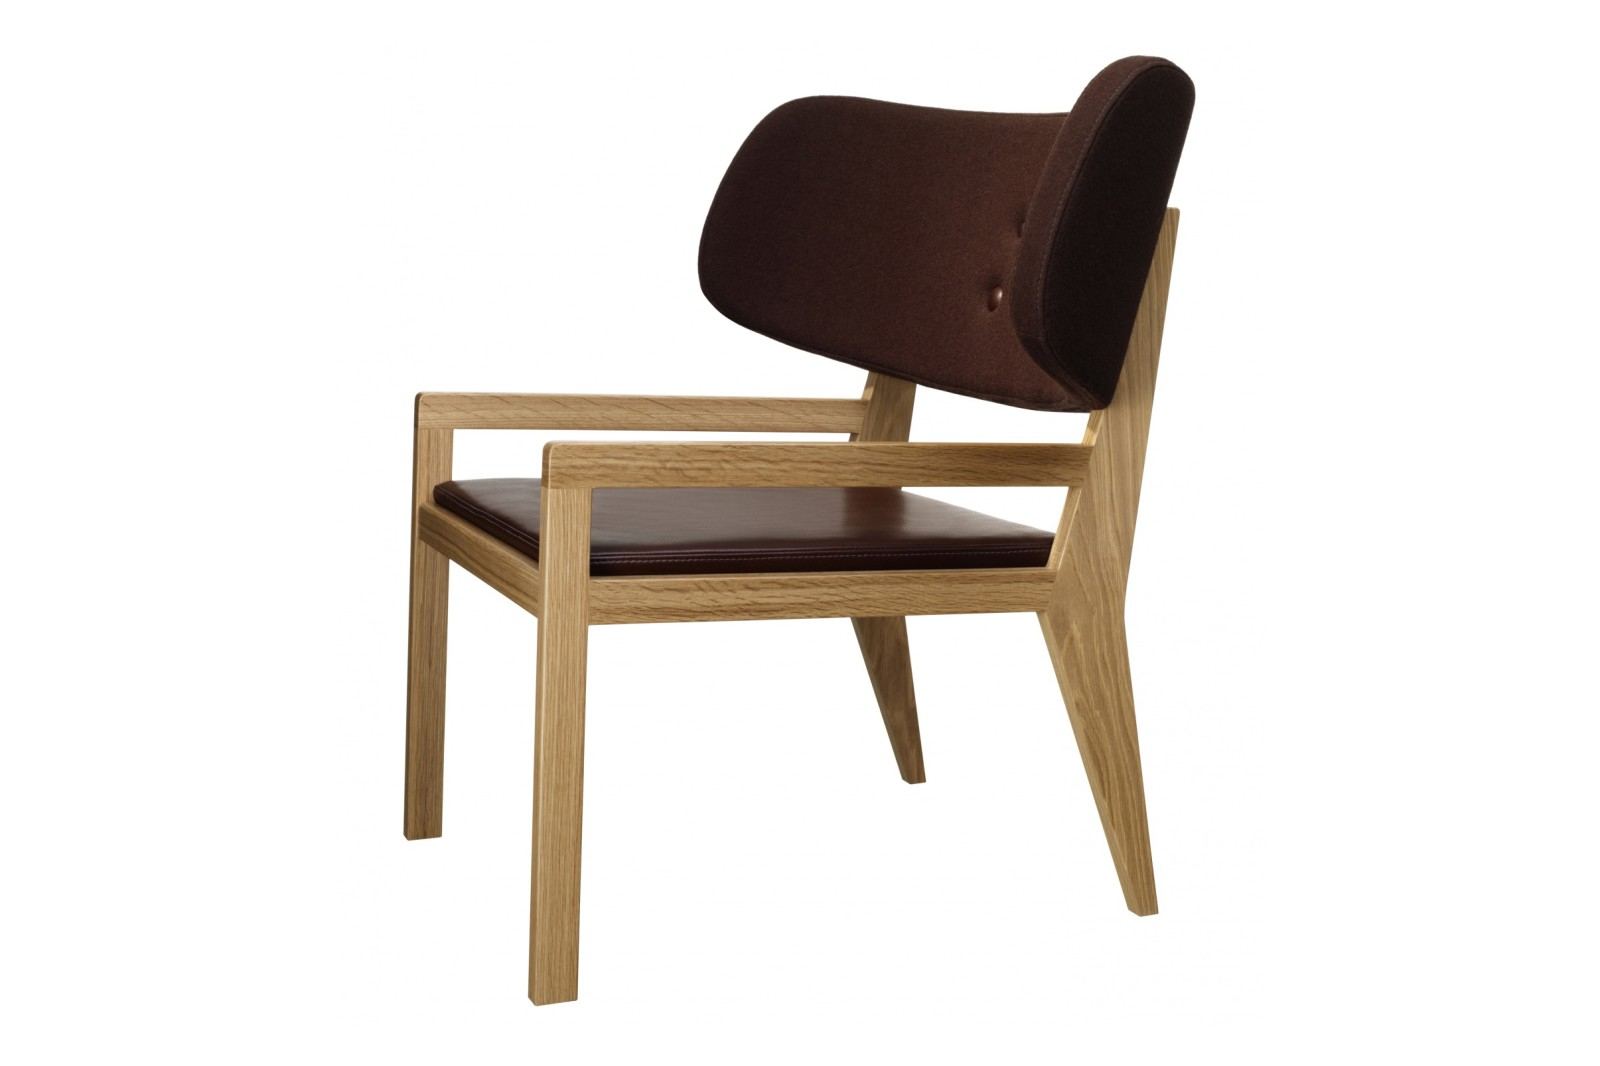 Cartoon Easy Chair with Leather Seat Oak Natural Lacquer, Elmo Baltique 93002, Europost 2 Colour 610